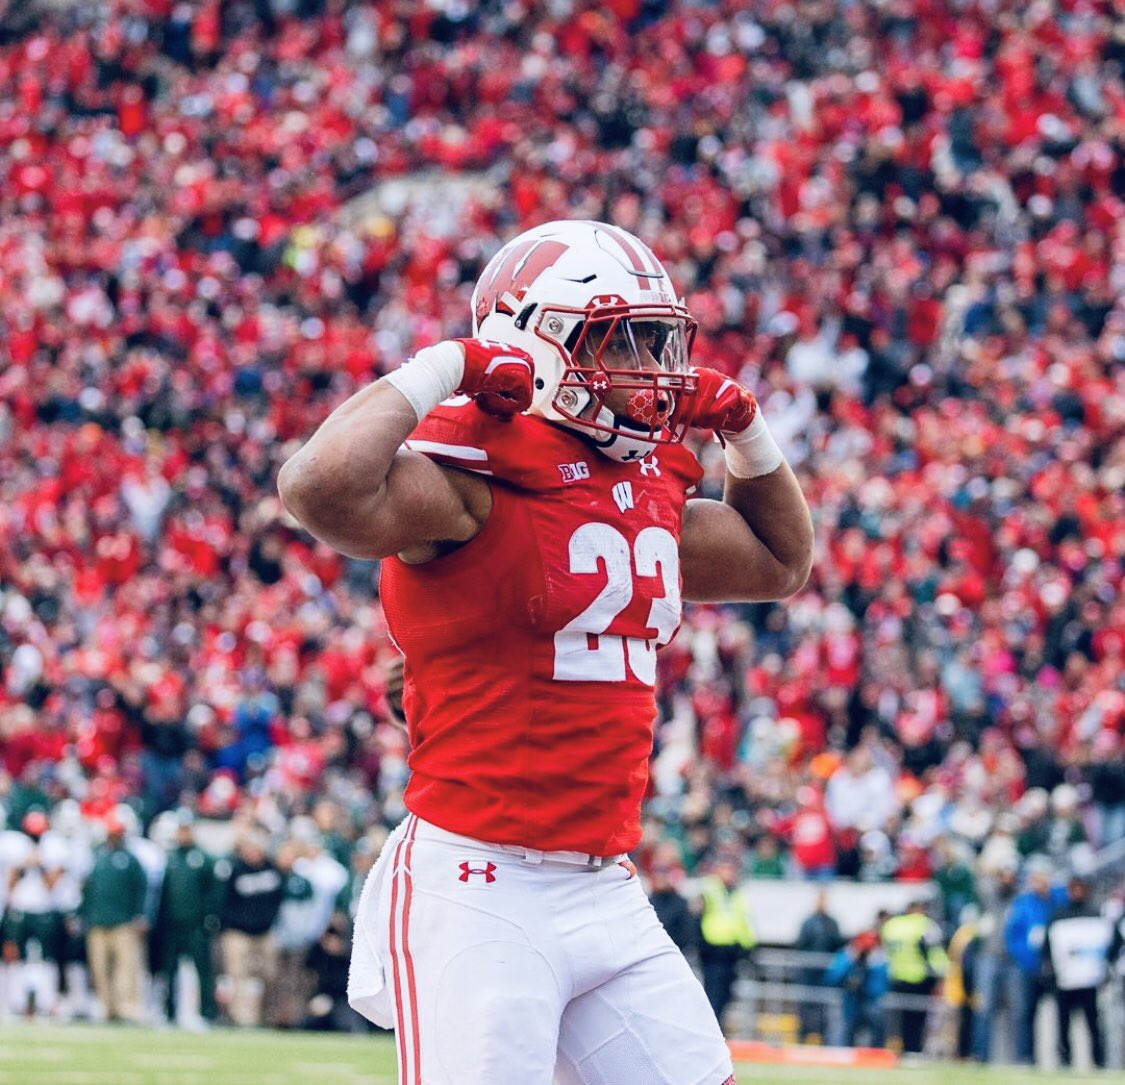 AGTG. Blessed to receive an offer from The University of Wisconsin! @ChadSimmons_ @Mansell247 @RecruitGeorgia @CoachWild15 @CoachTurnerUW @TEwracademy https://t.co/lcWxP4ndyD